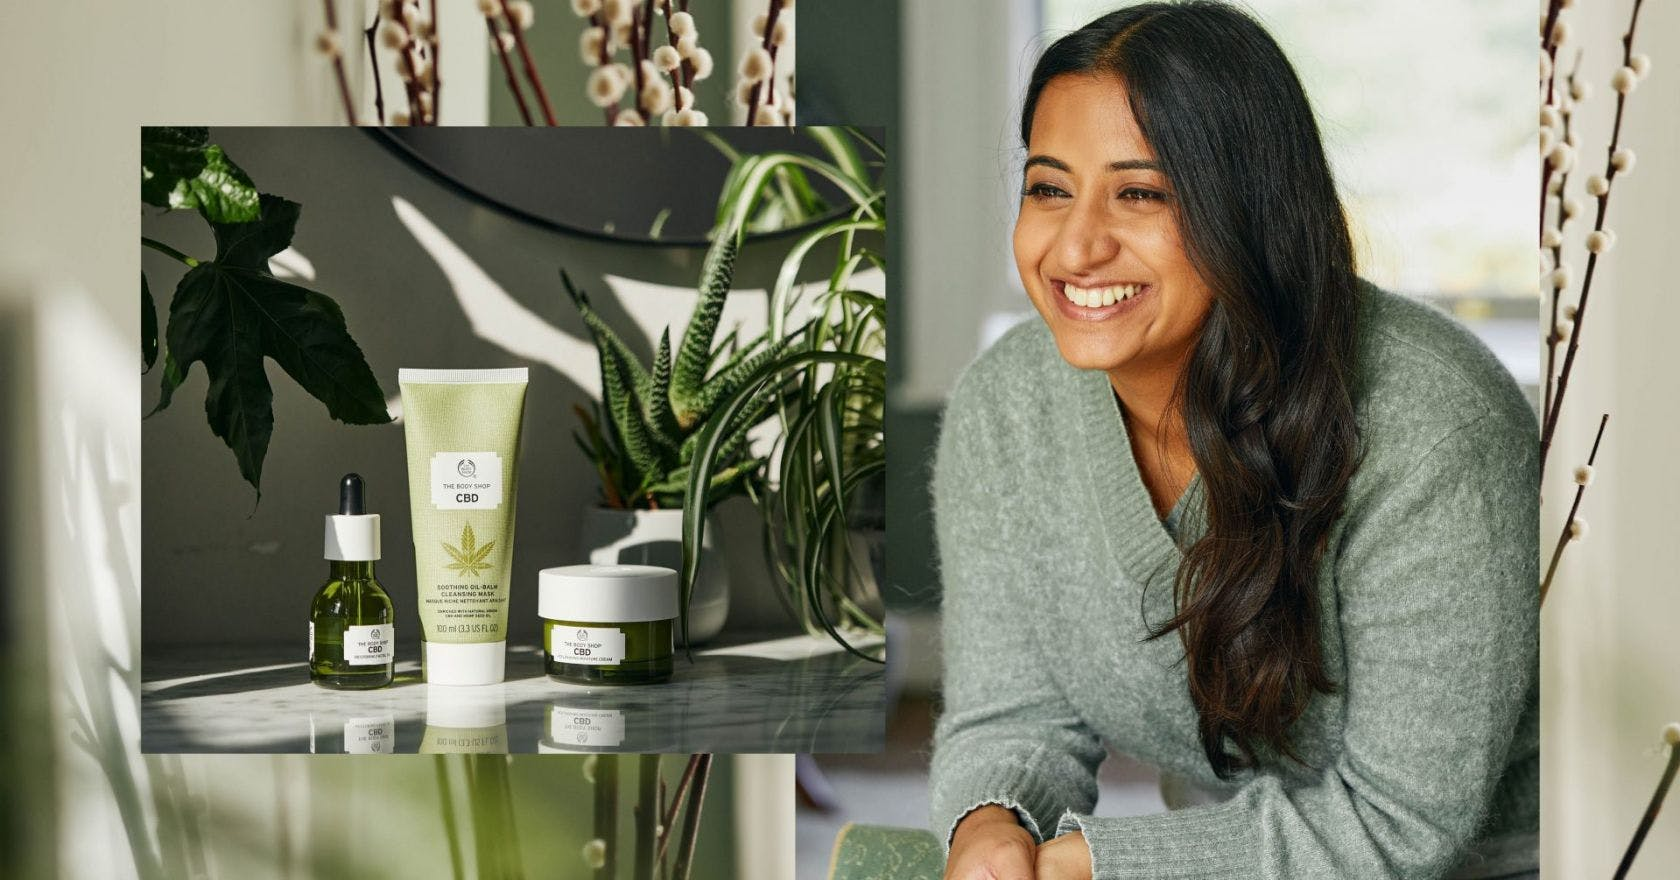 I added CBD into my beauty routine and this is what happened